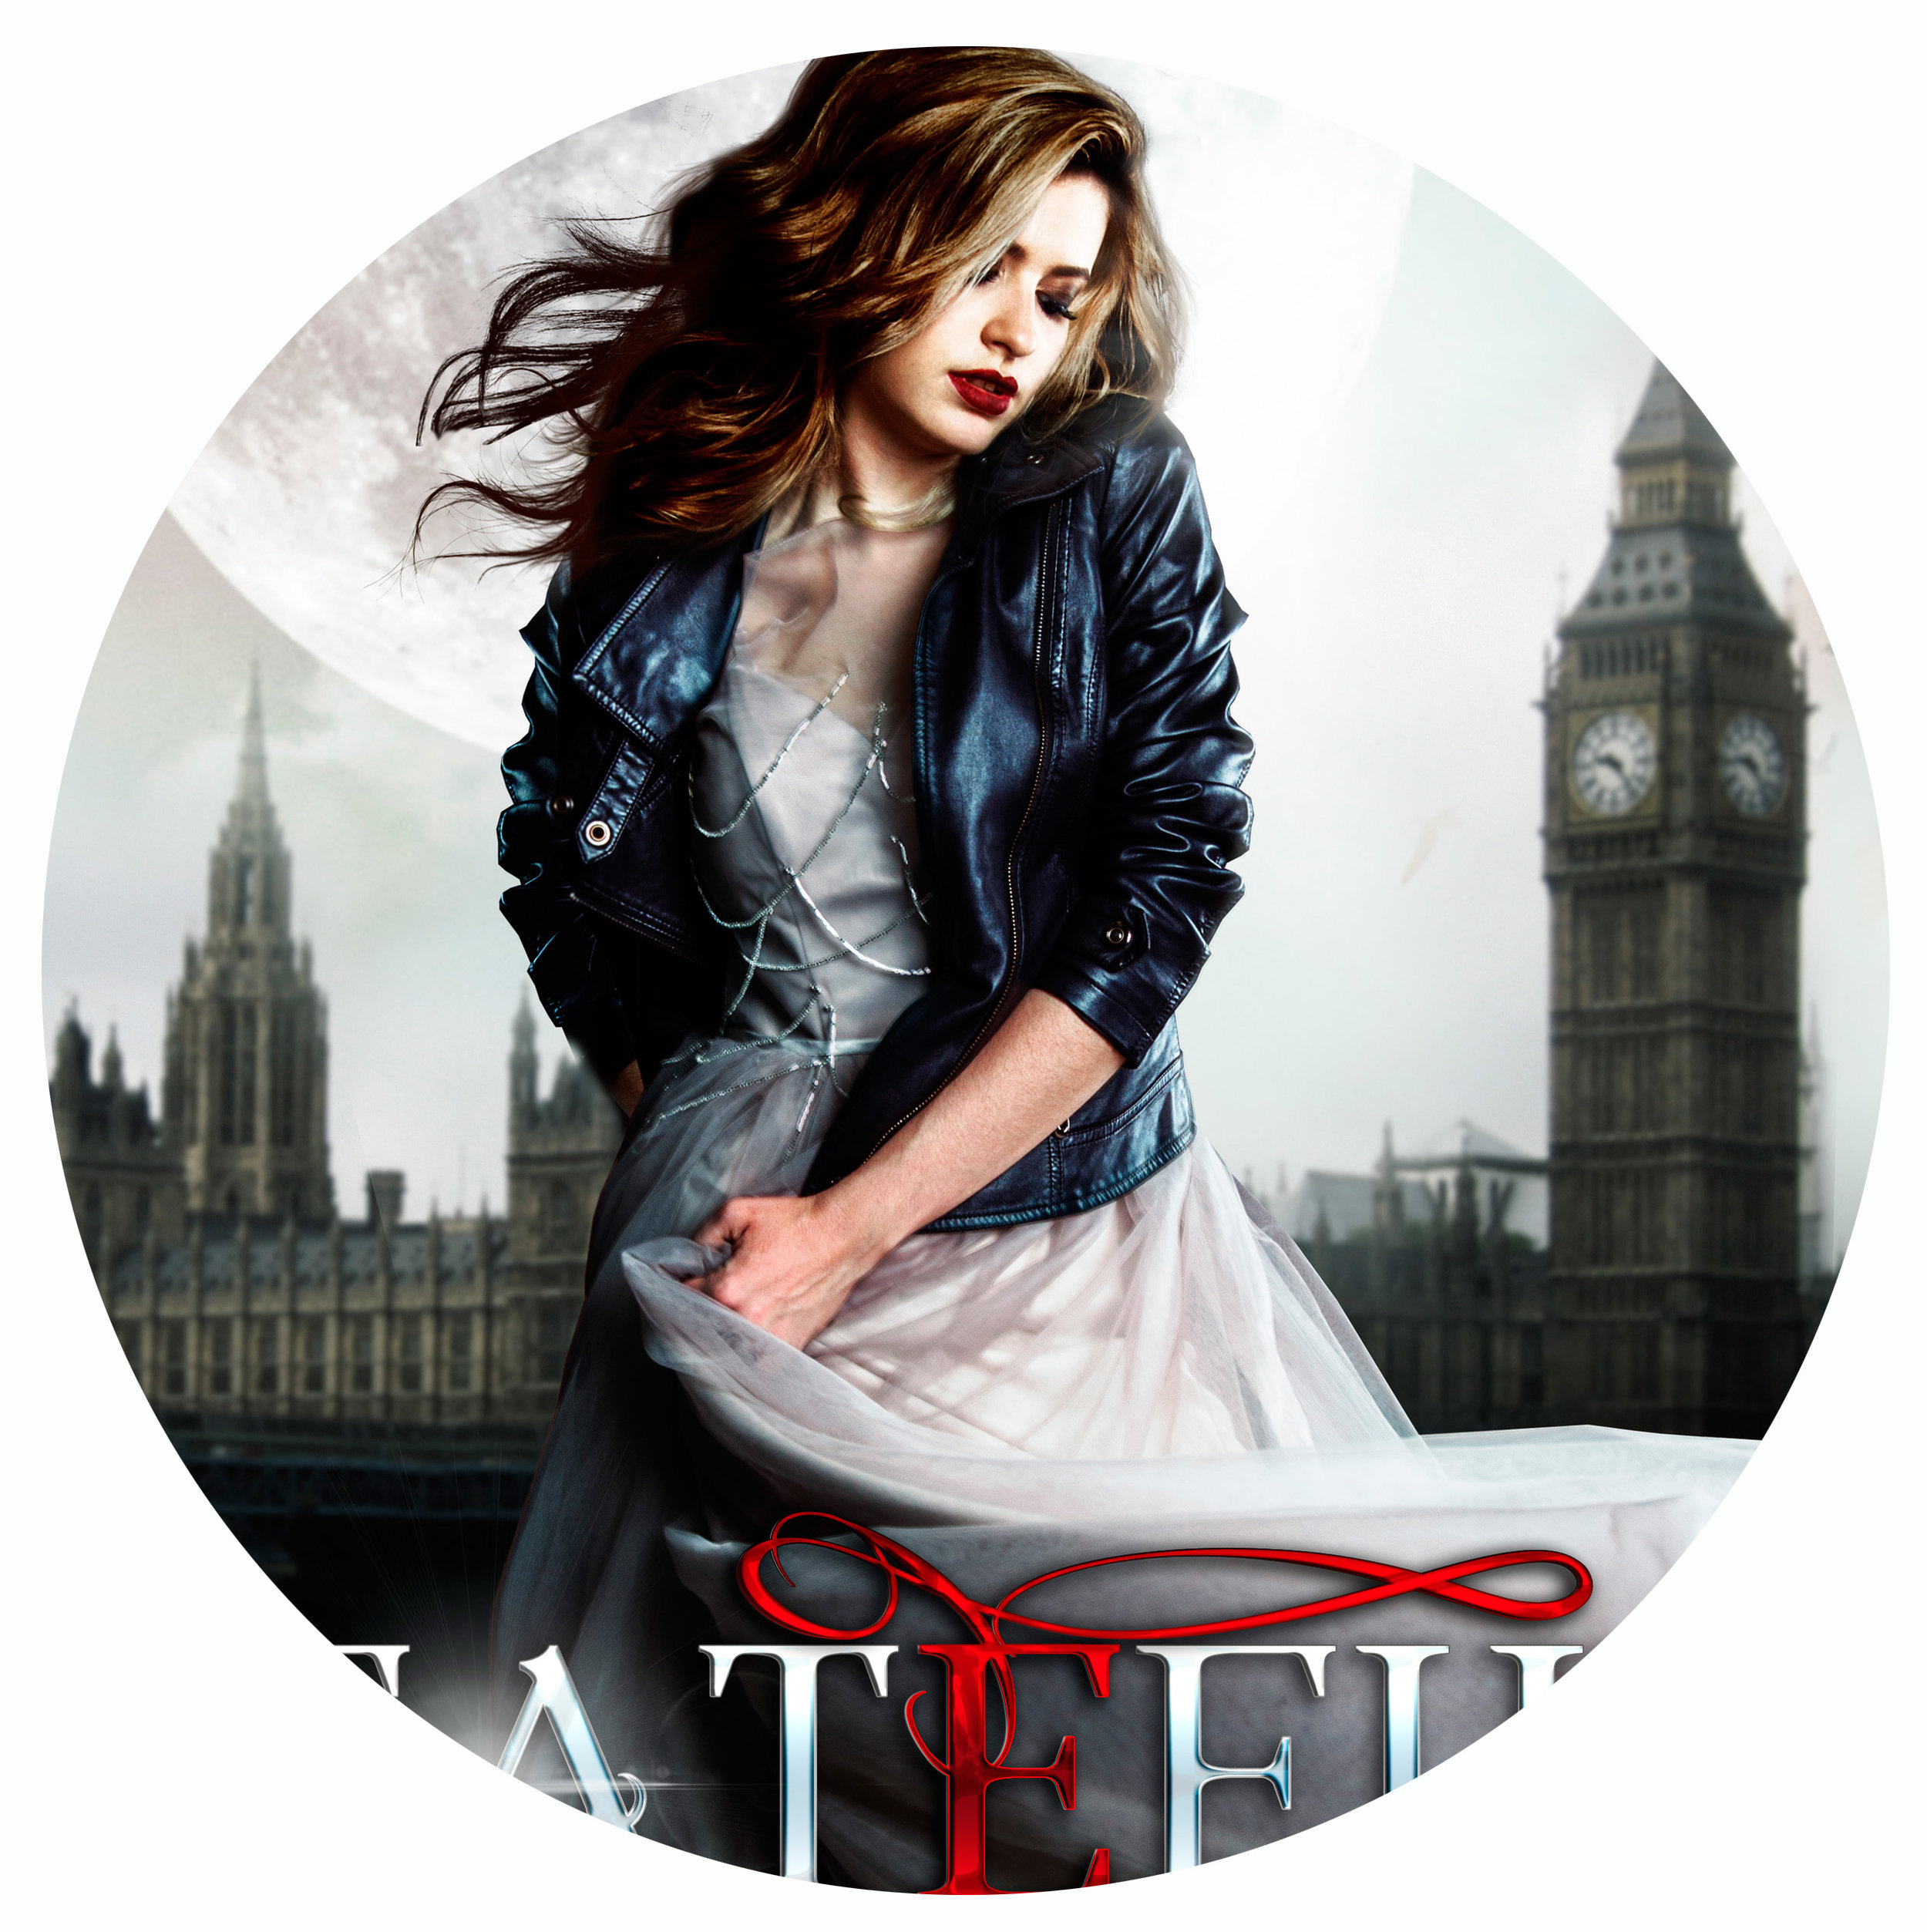 Fateful Is Published - Cheri wrote and published Fateful, the first book in the Fateful Vampire Trilogy, a story that had been roiling her thoughts until she finally put it on paper.